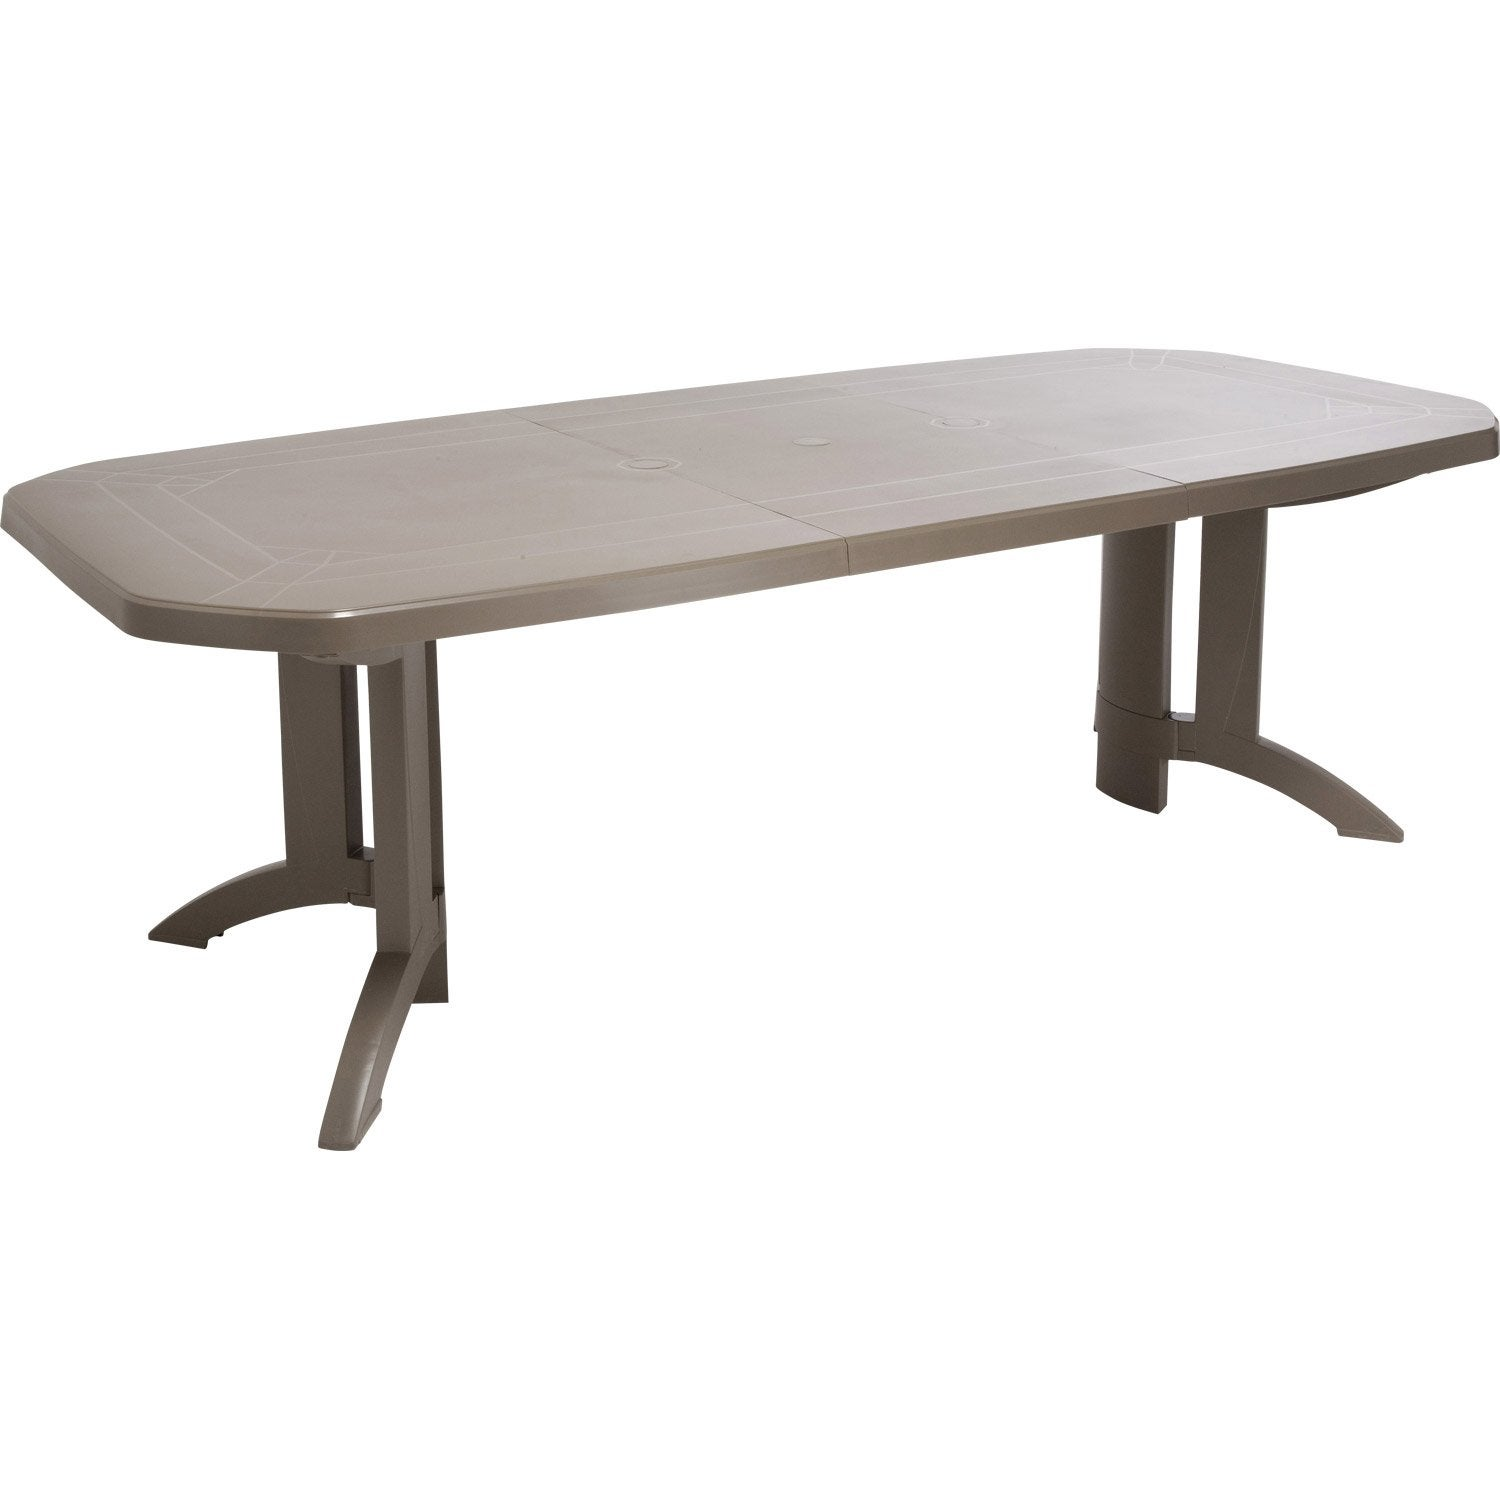 Table de jardin hexagonale en plastique des id es int ressant - Ikea table rectangulaire ...